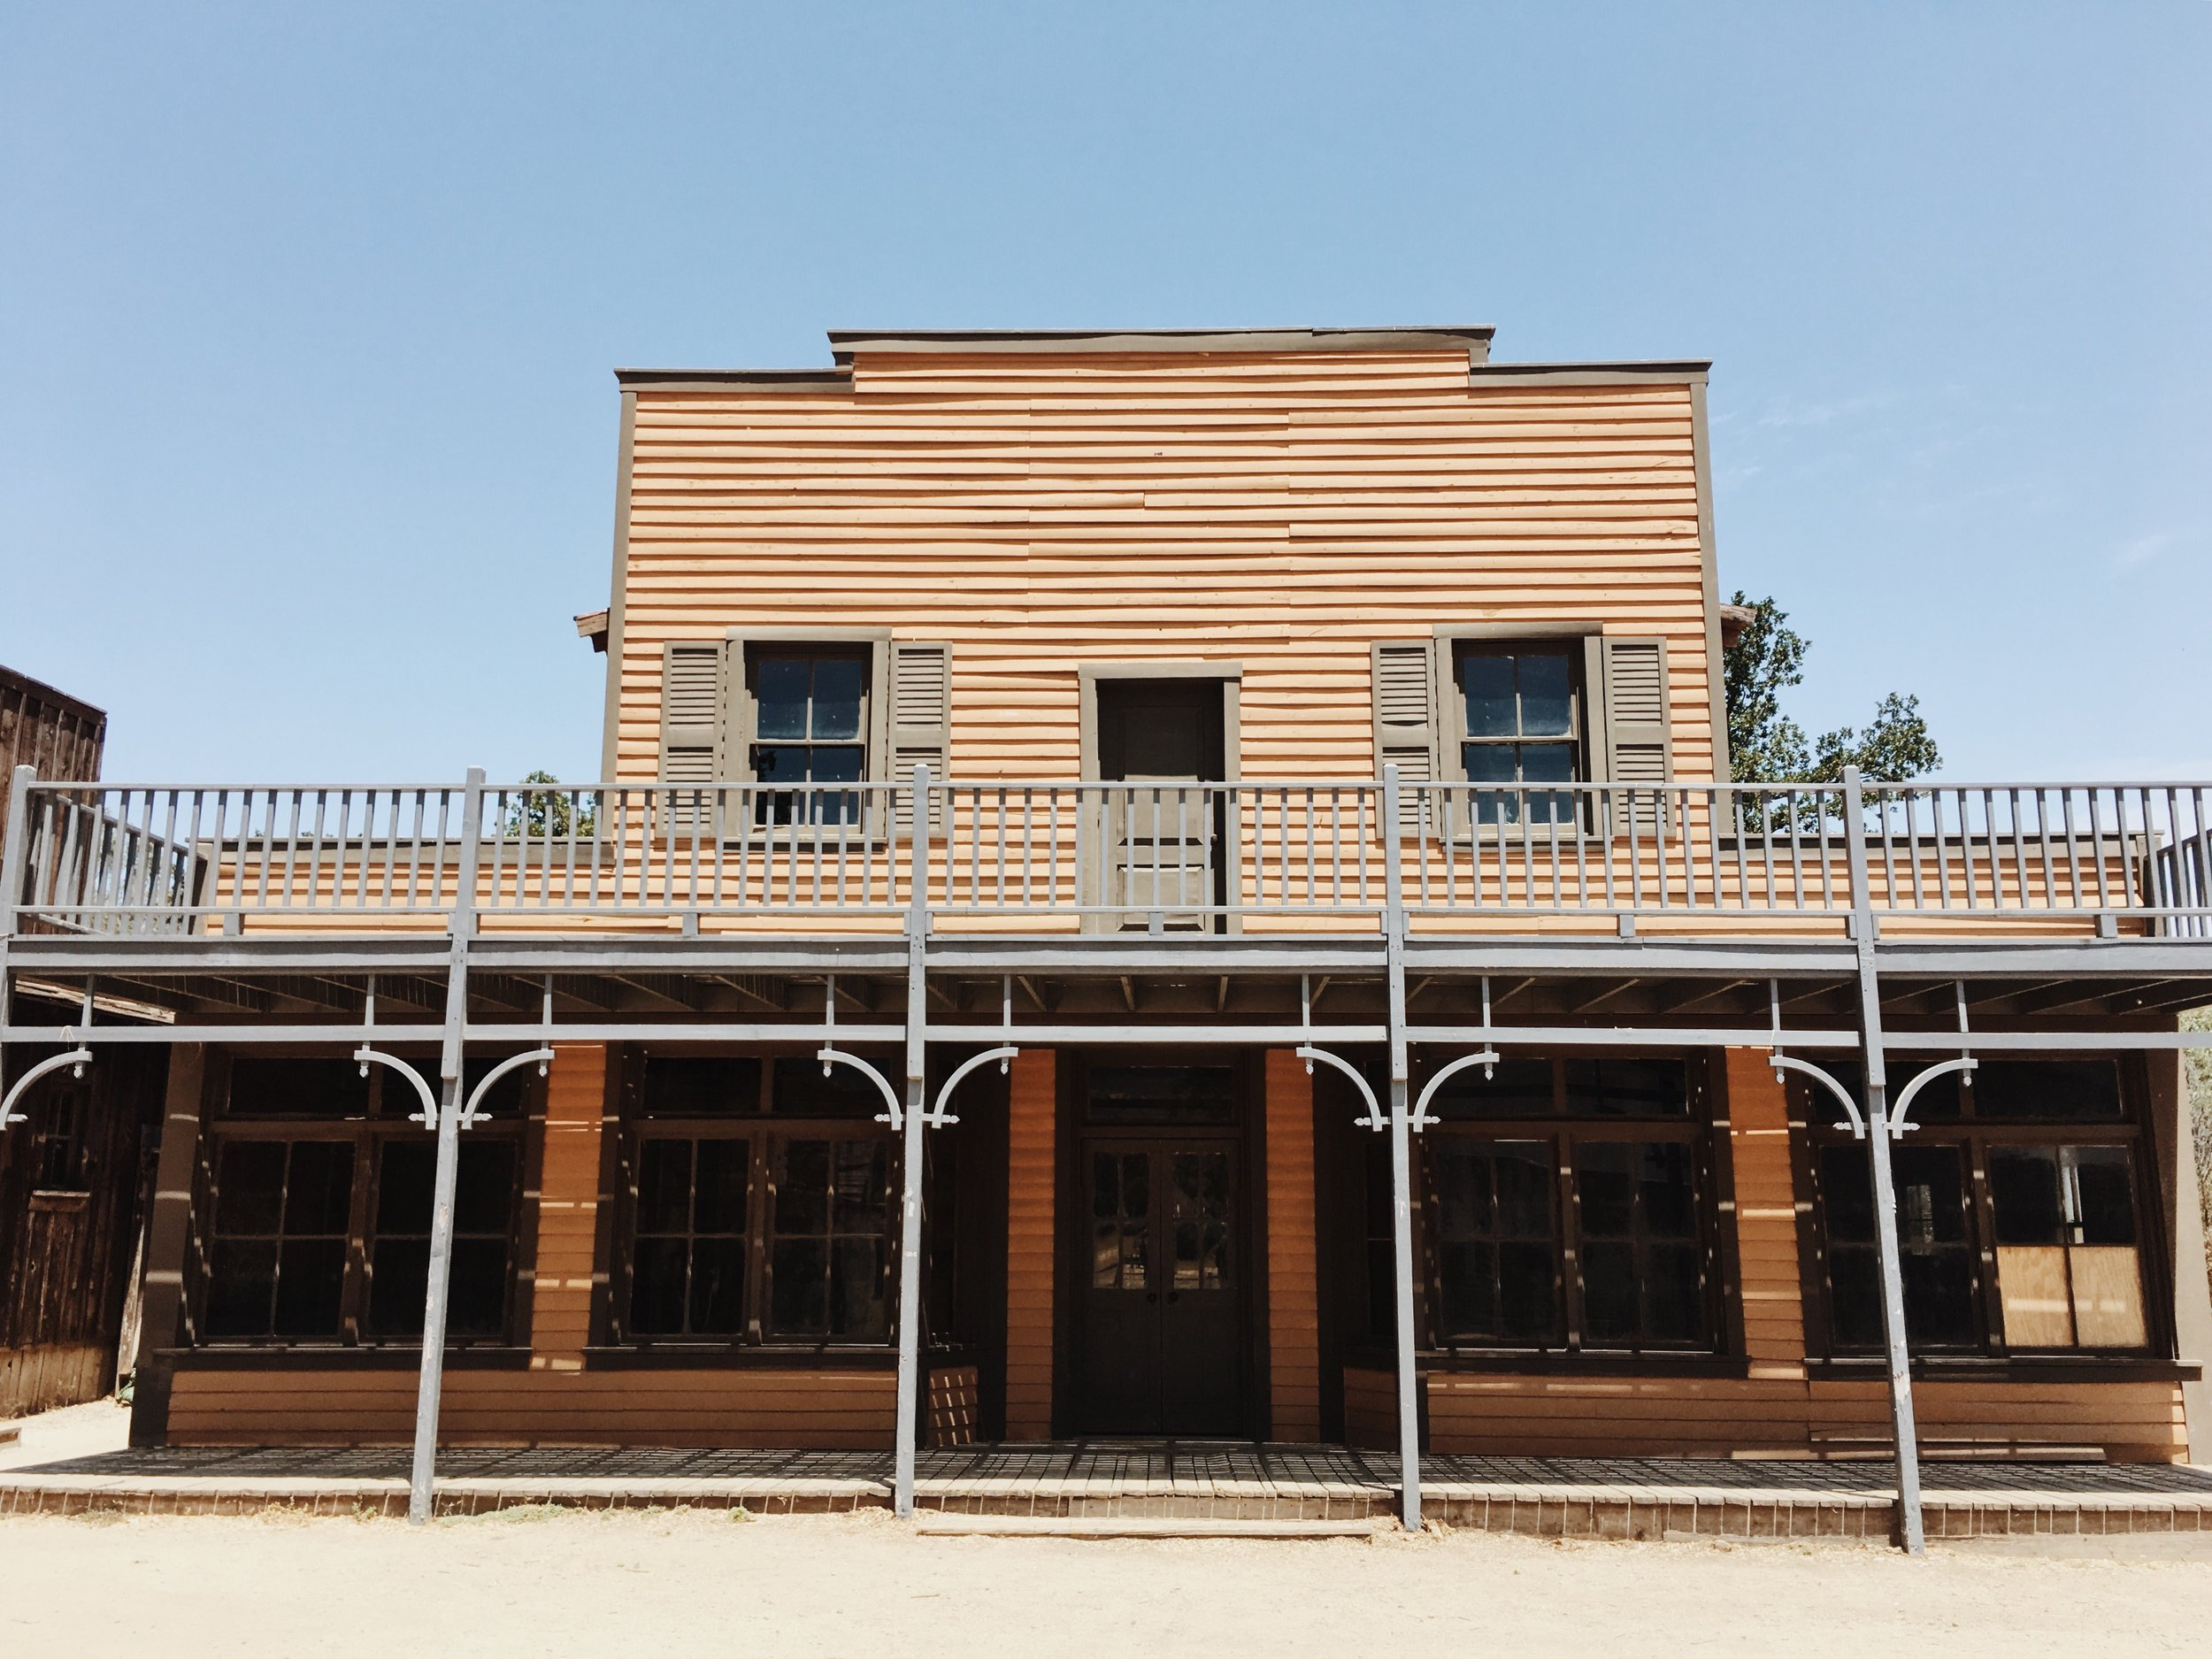 One of the best parts of Paramount Ranch is how photogenic it is, so make sure you come with camera in hand! We're going to talk you through a few of our favorite spots we took photos and the outfits we wore in each location. Lets do it!